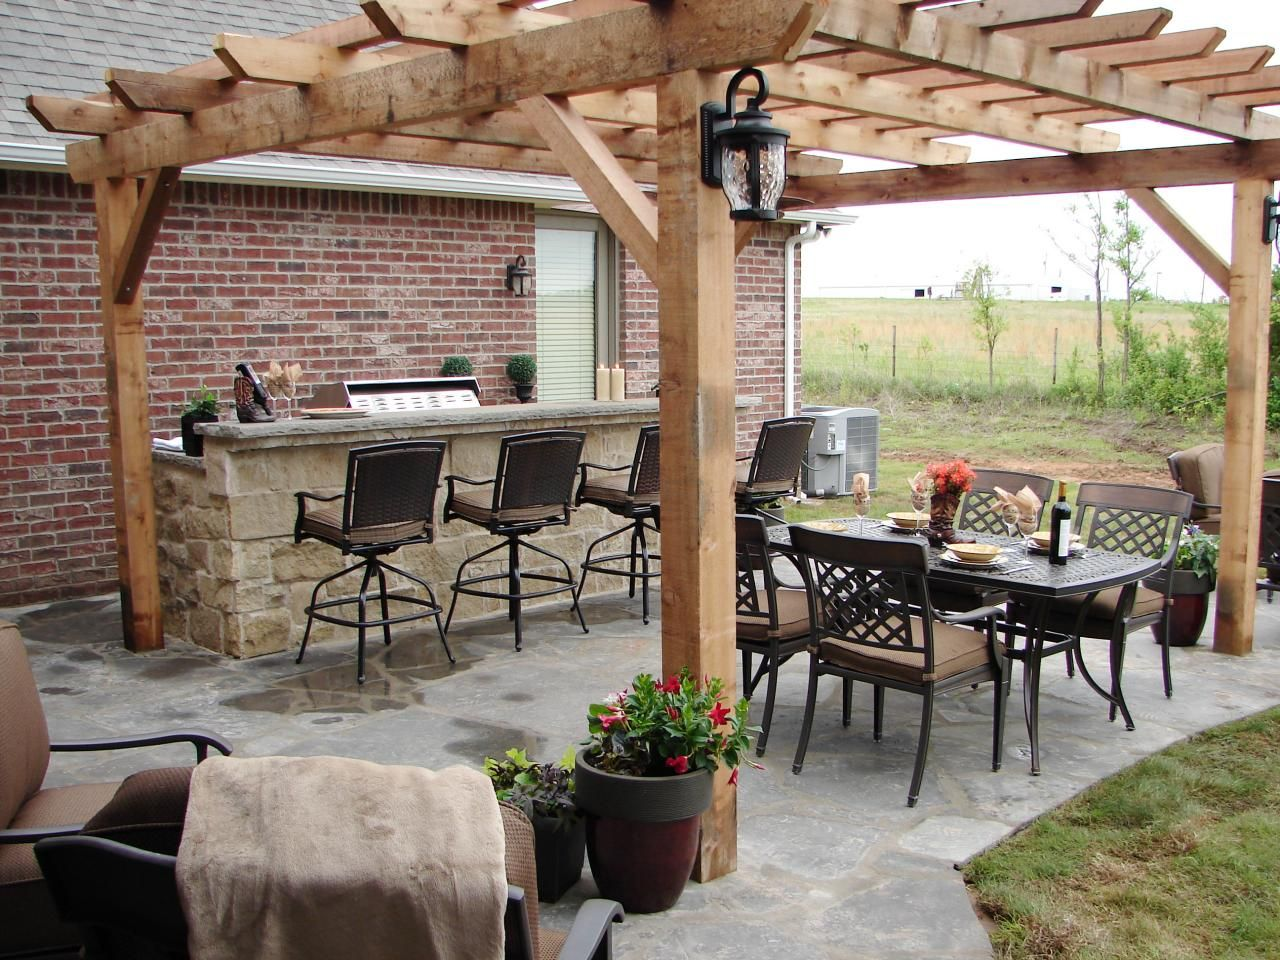 Outdoor Kitchens and Grilling Stations Hgtv Outdoor spaces and